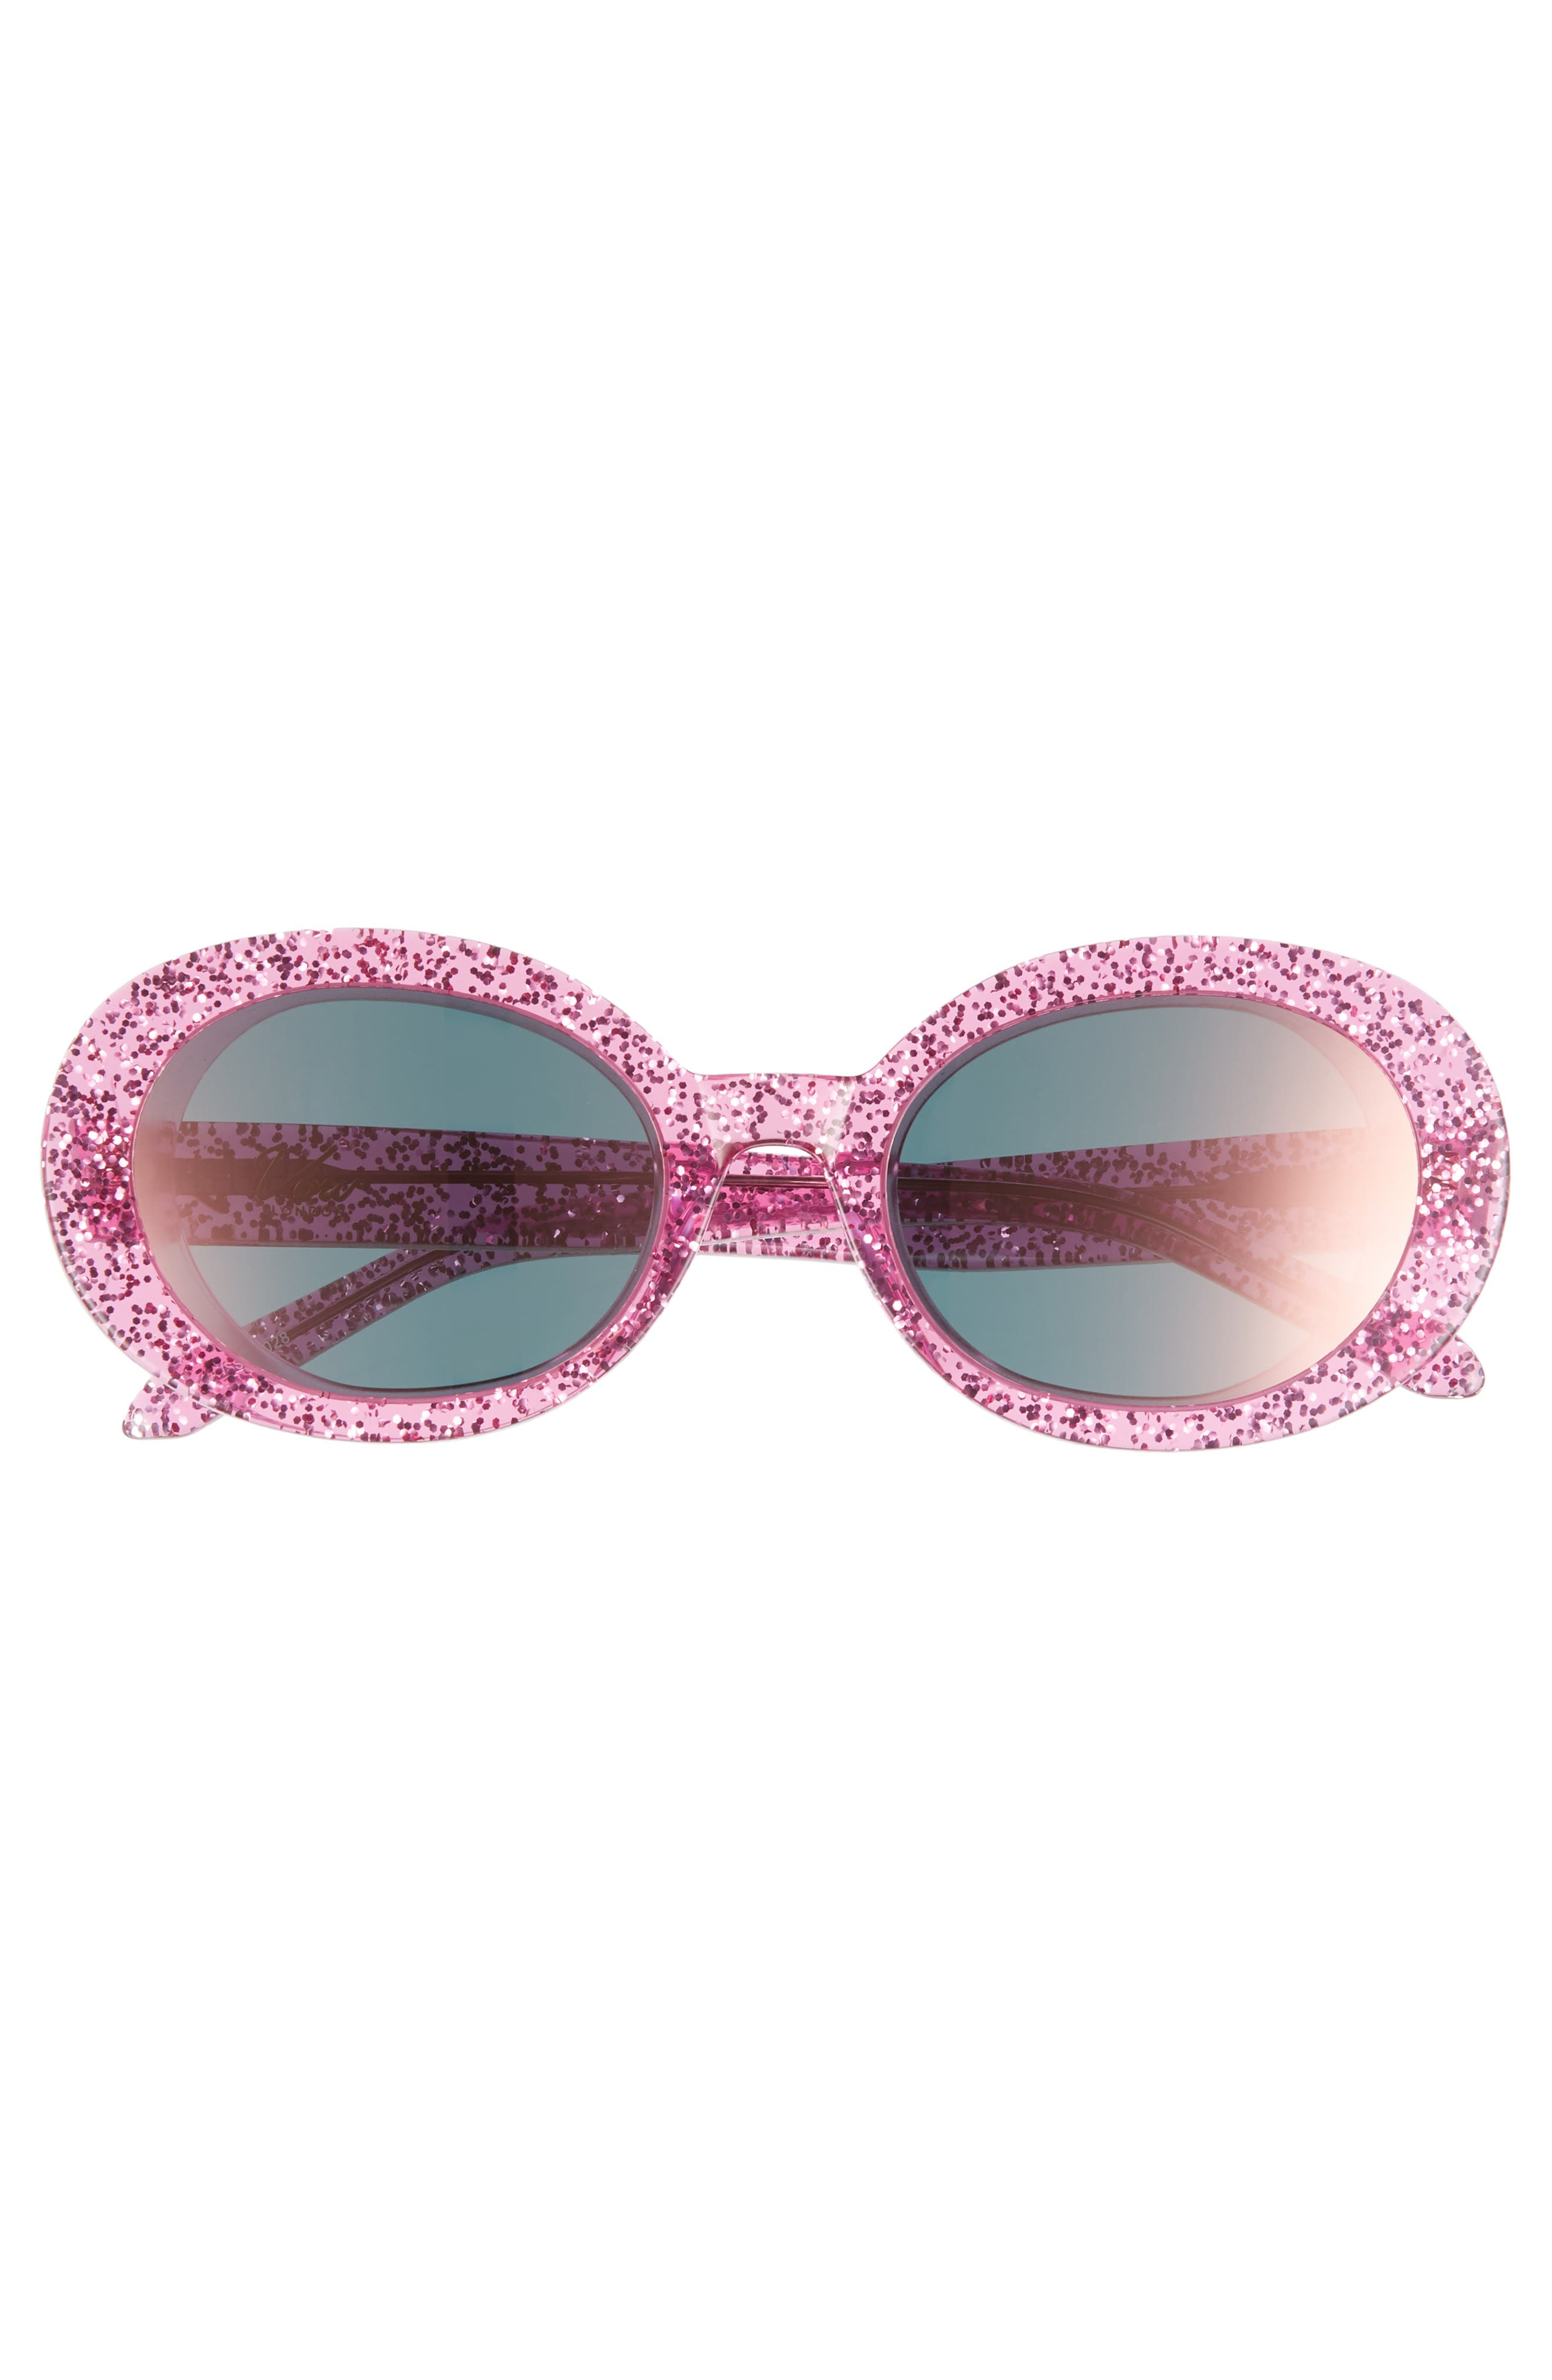 Selena 53mm Oval Sunglasses,                             Alternate thumbnail 3, color,                             Pink Glitter/ Pink Mirror